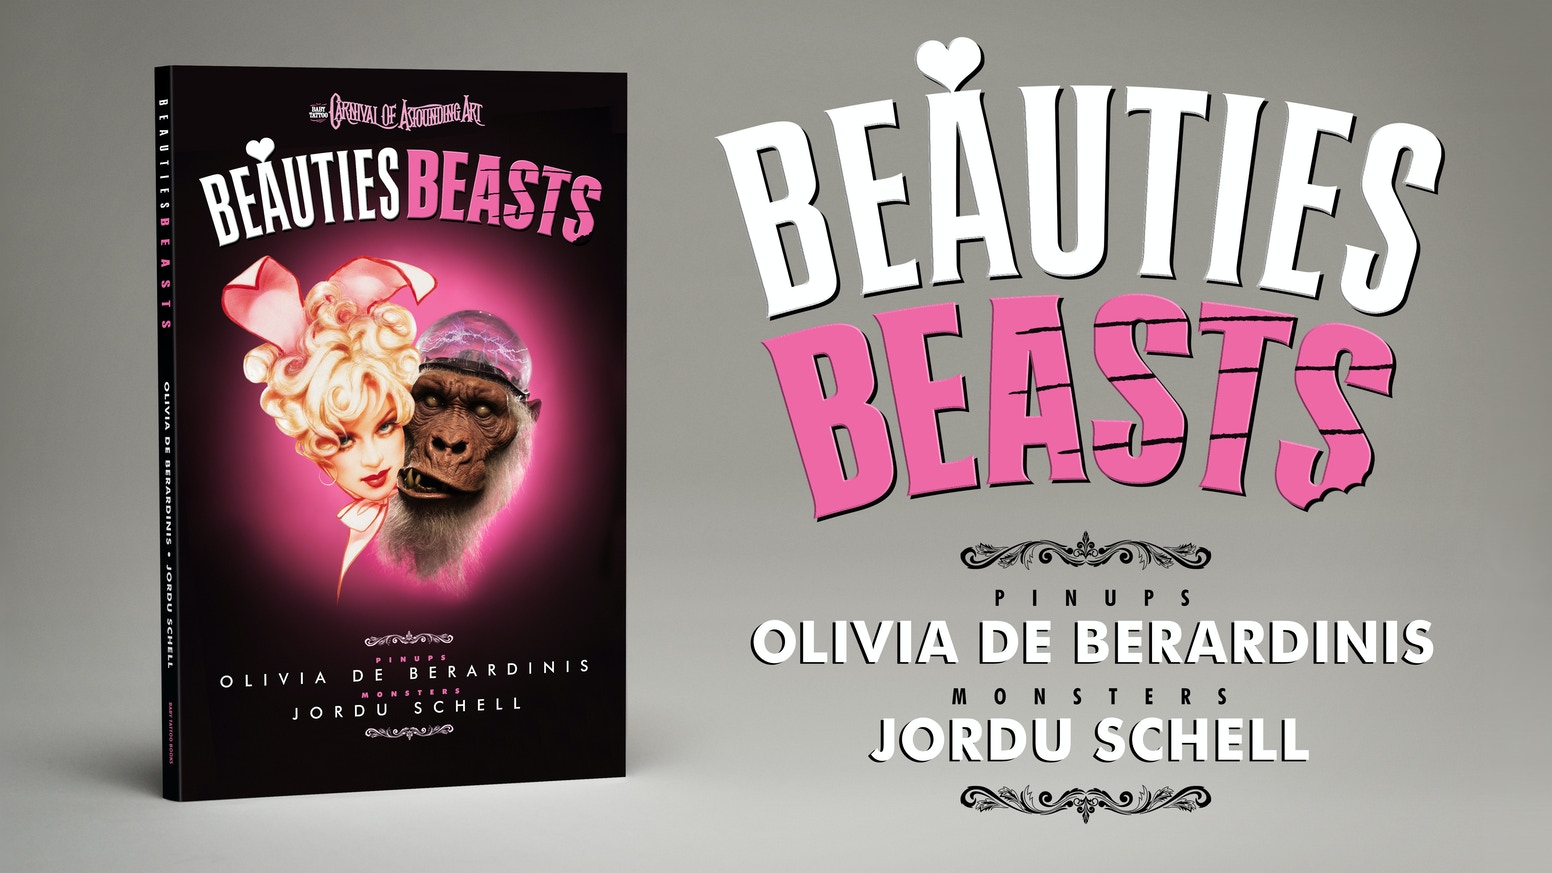 Lovely Ladies and Menacing Monsters from pinup legend Olivia De Berardinis and creature creator Jordu Schell. Foreword by Elvira.